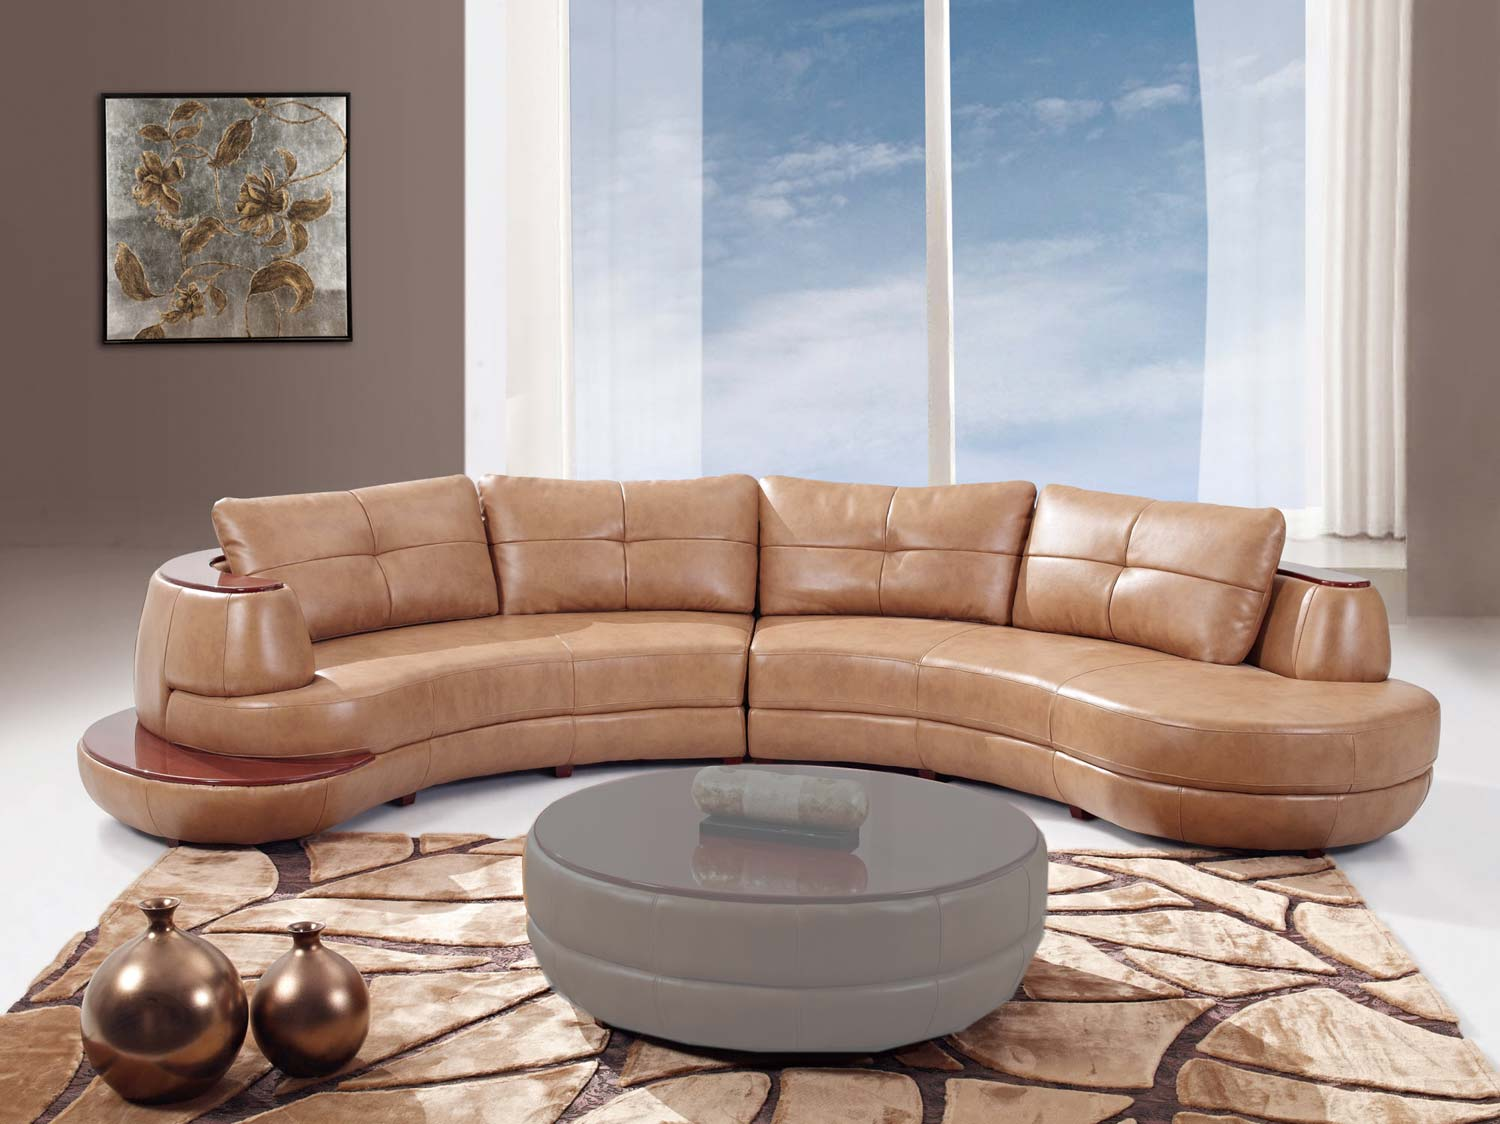 Global Furniture USA 918 2 Piece Sectional Sofa - Honey - Bonded Leather